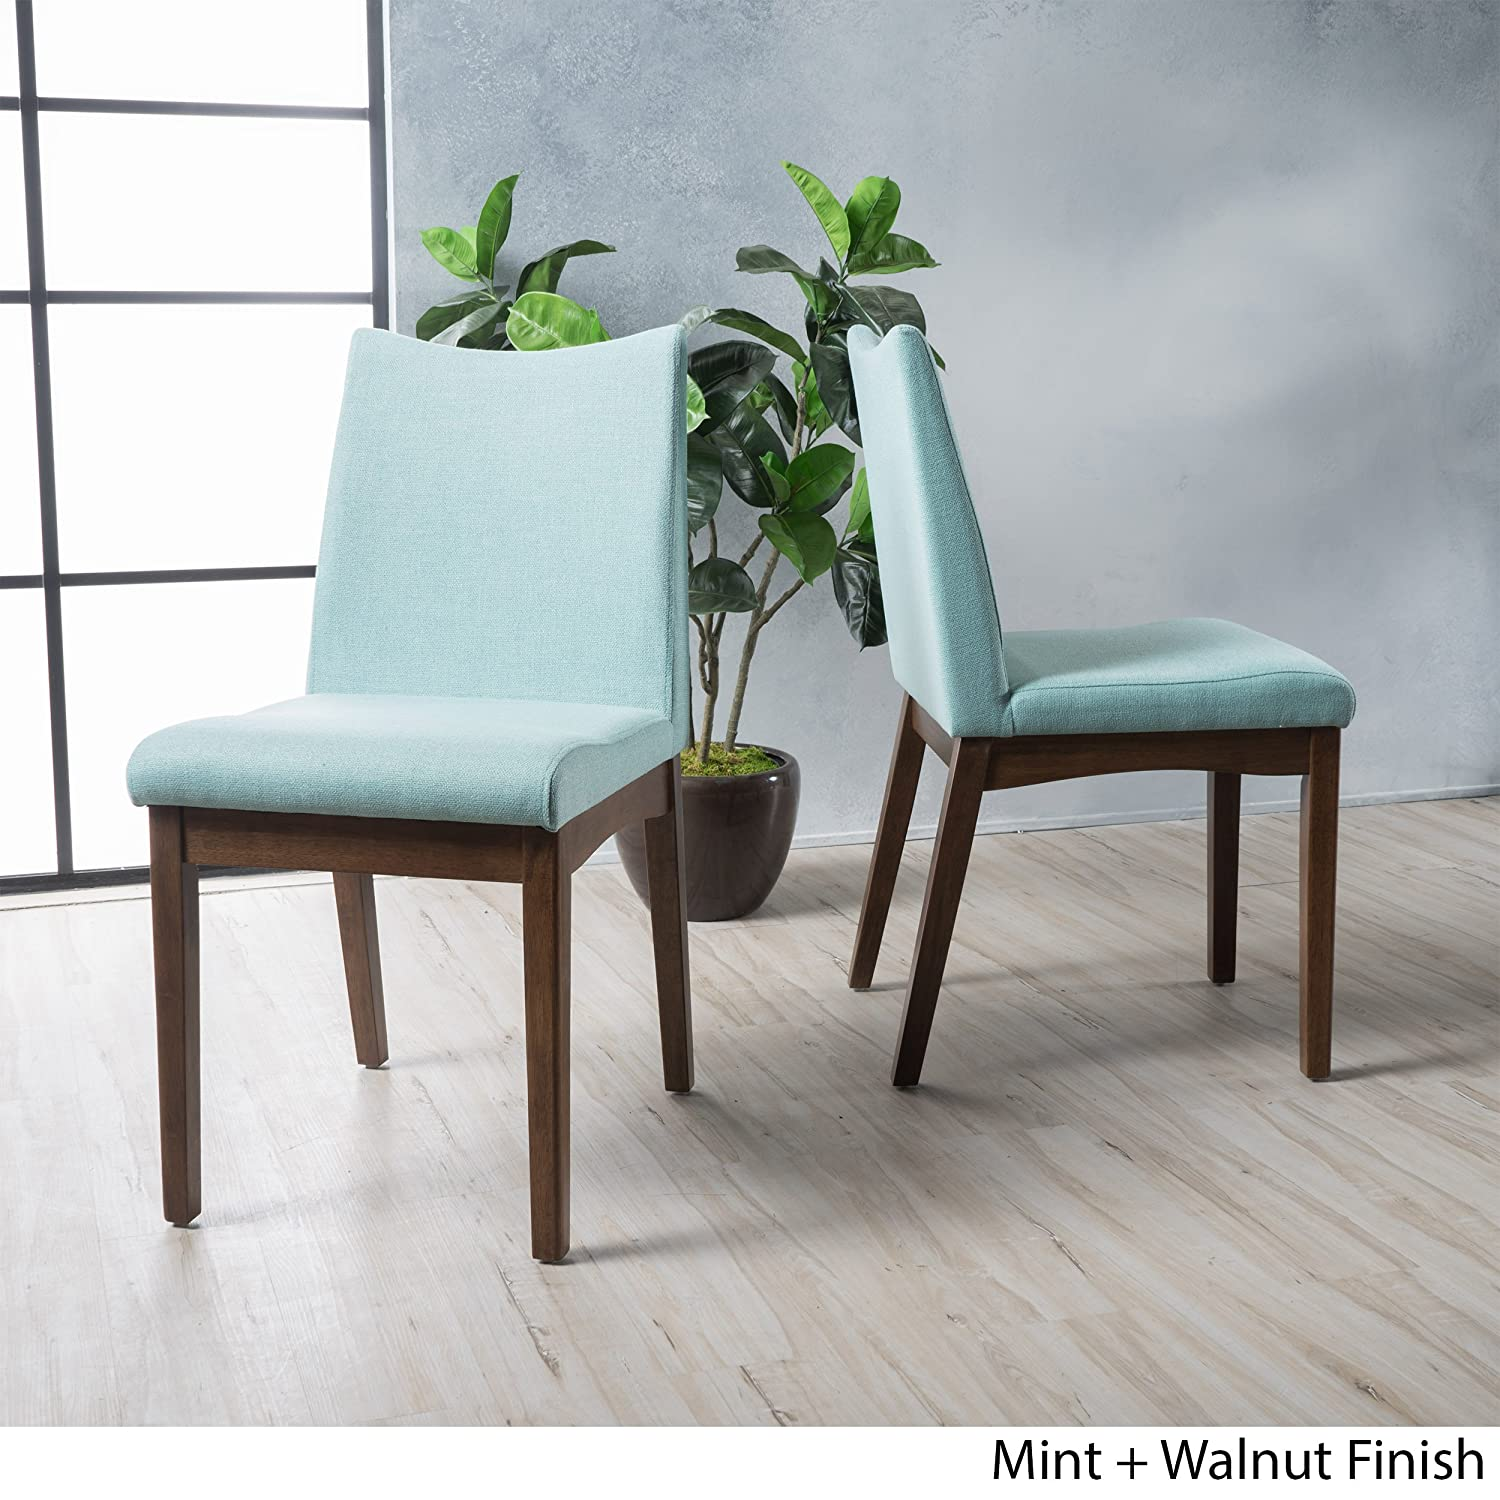 Christopher Knight Home Gertrude Mint Fabric with Walnut Finish Mid Century Modern Dining Chairs (Set of 2)